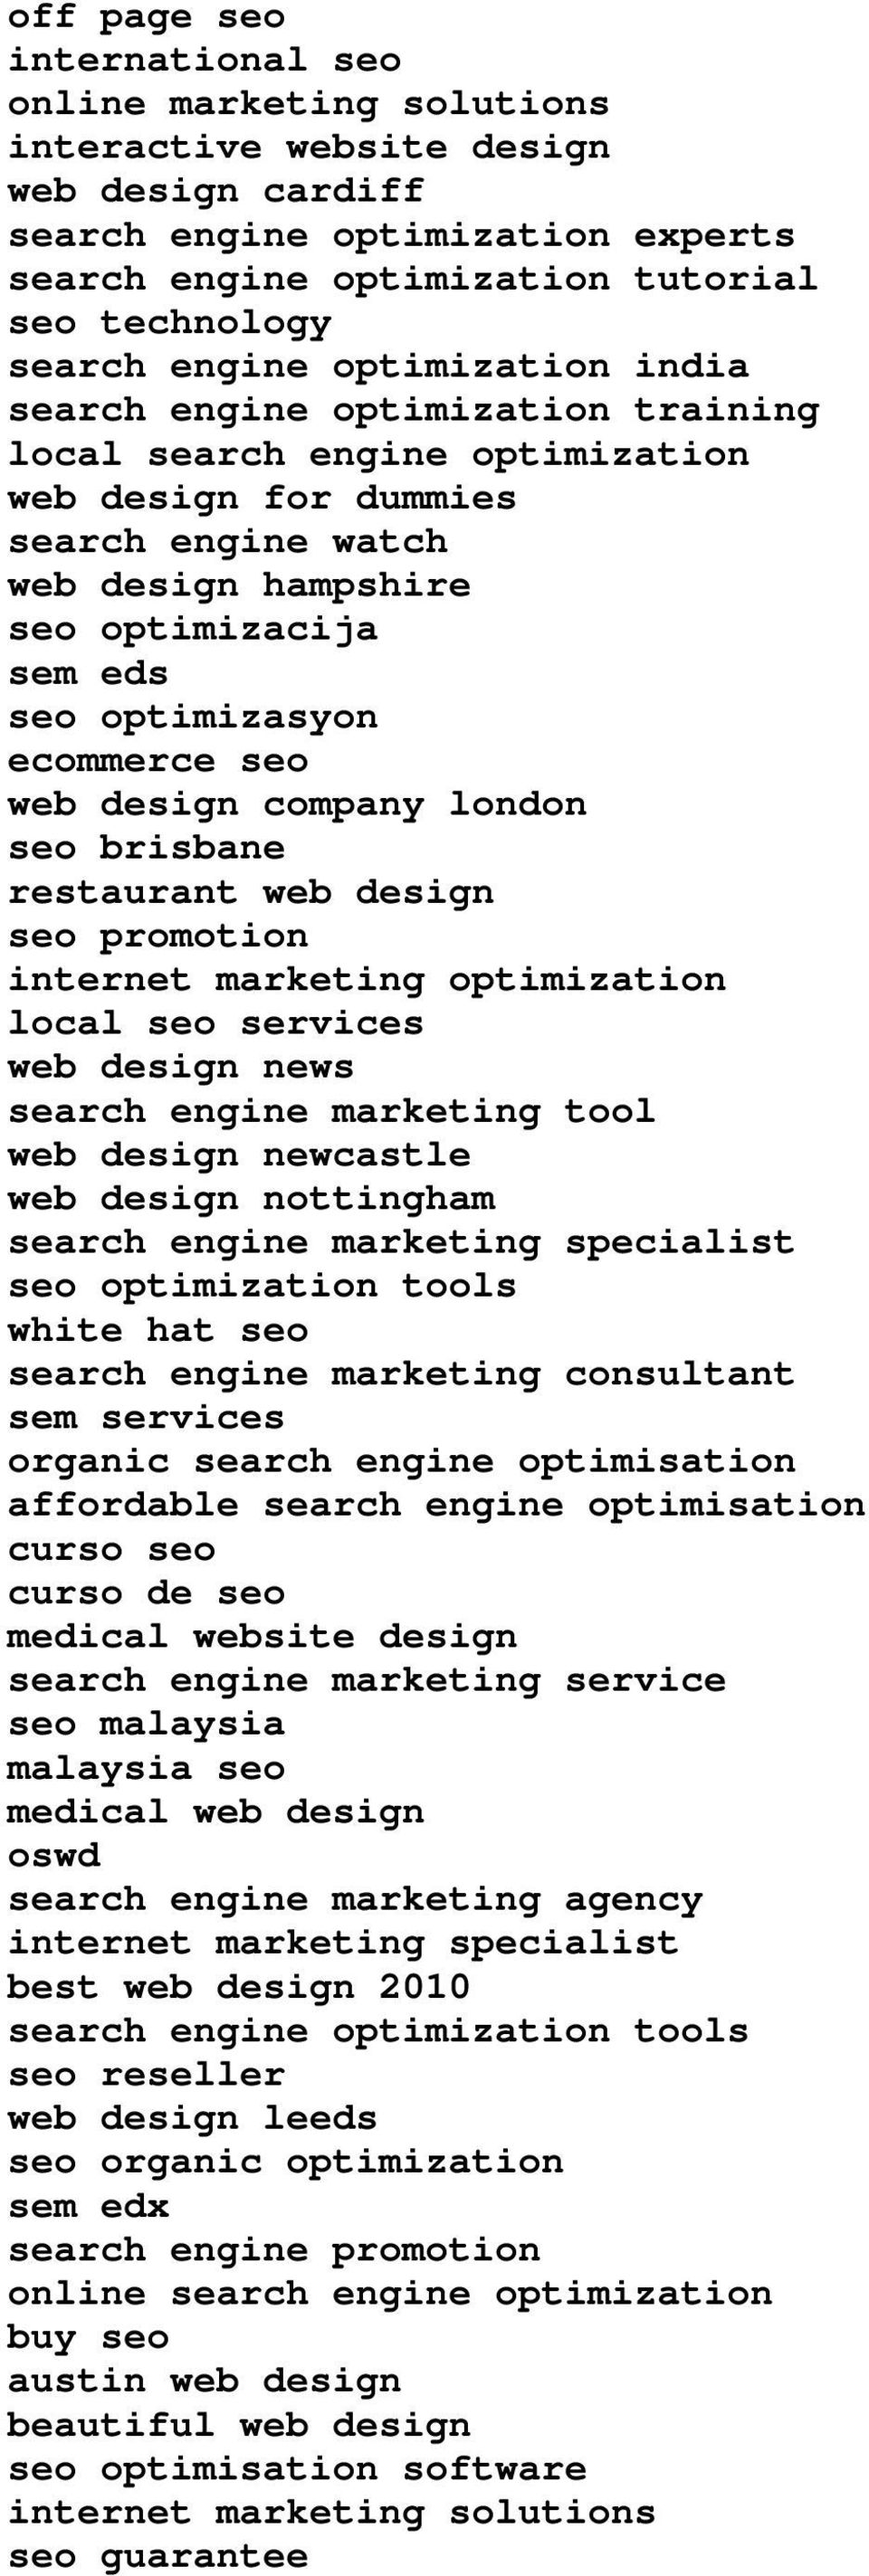 optimizasyon ecommerce seo web design company london seo brisbane restaurant web design seo promotion internet marketing optimization local seo services web design news search engine marketing tool